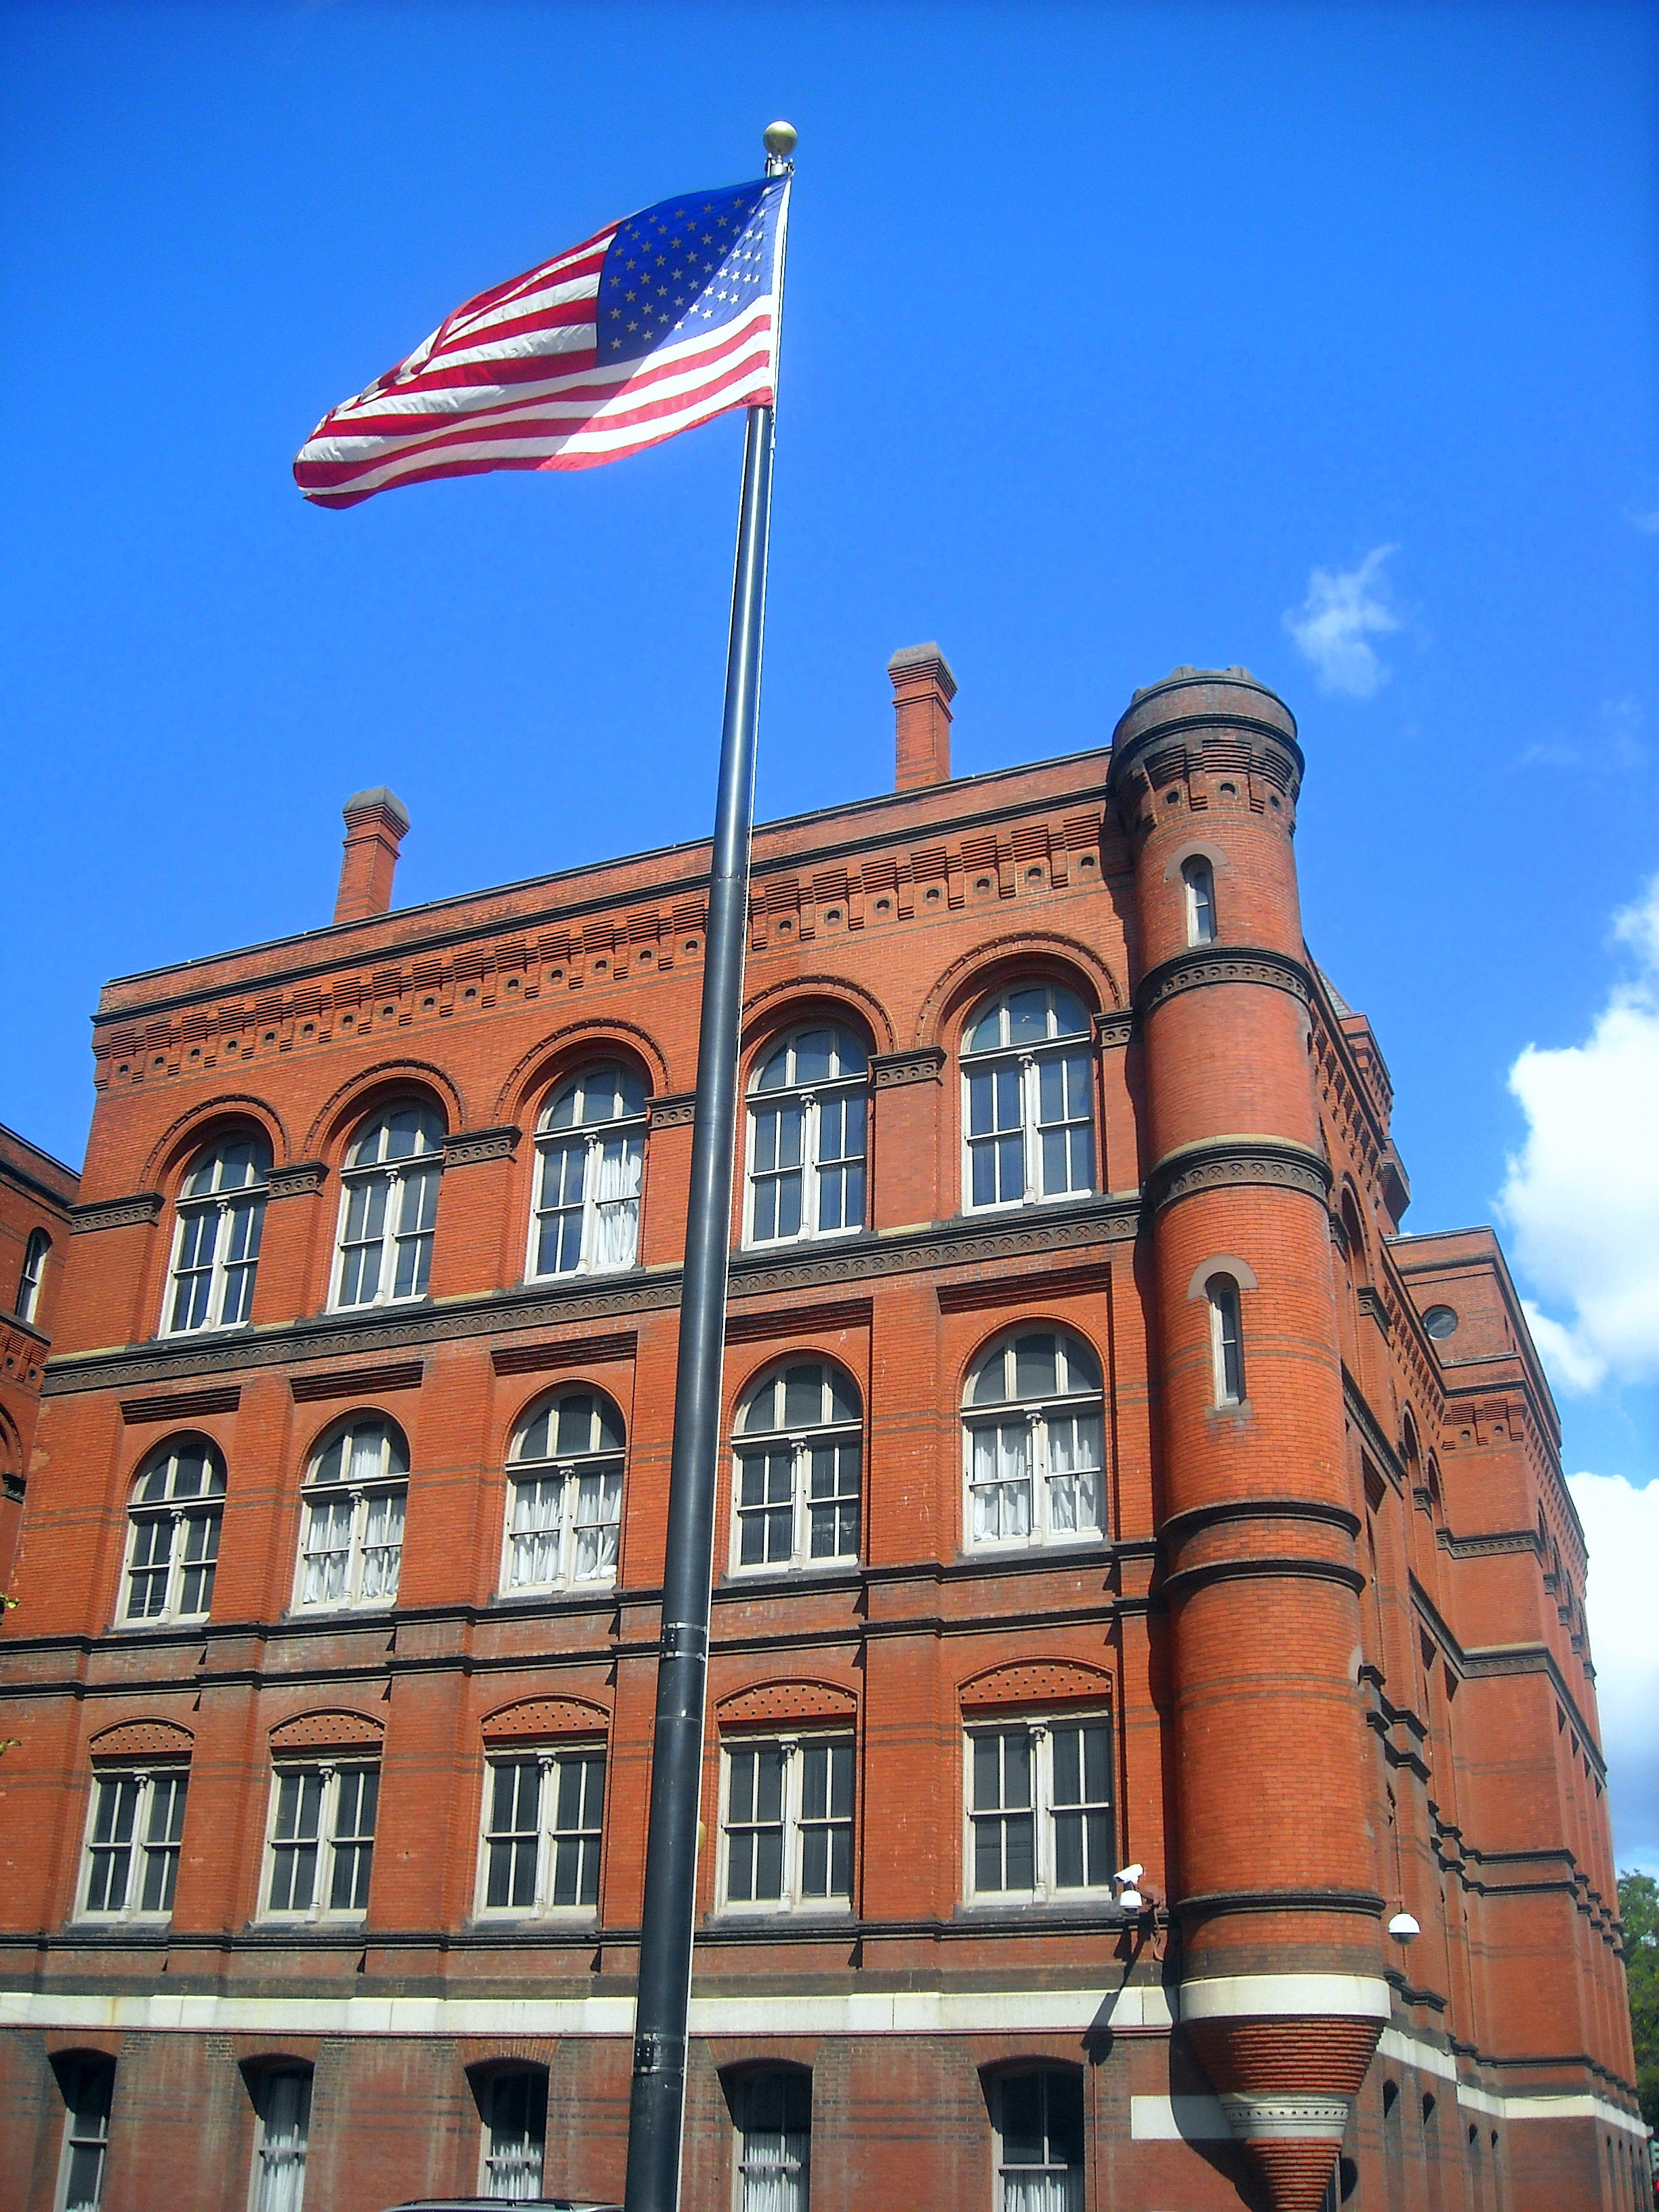 A view of the building's red brick facade.